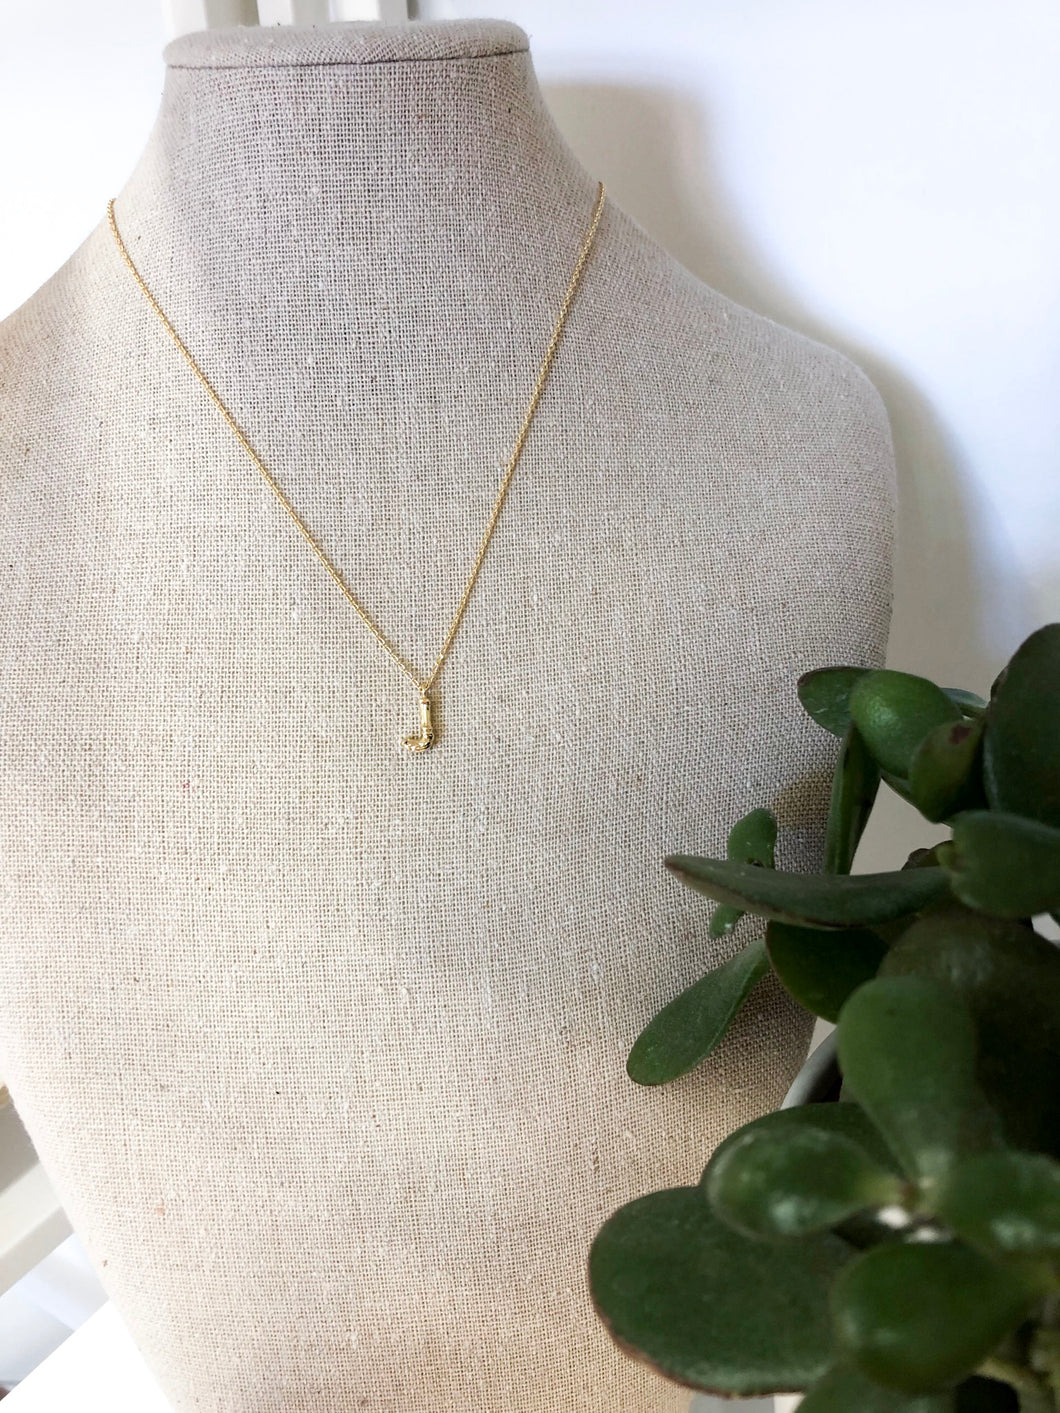 Bamboo Initial Necklace - J